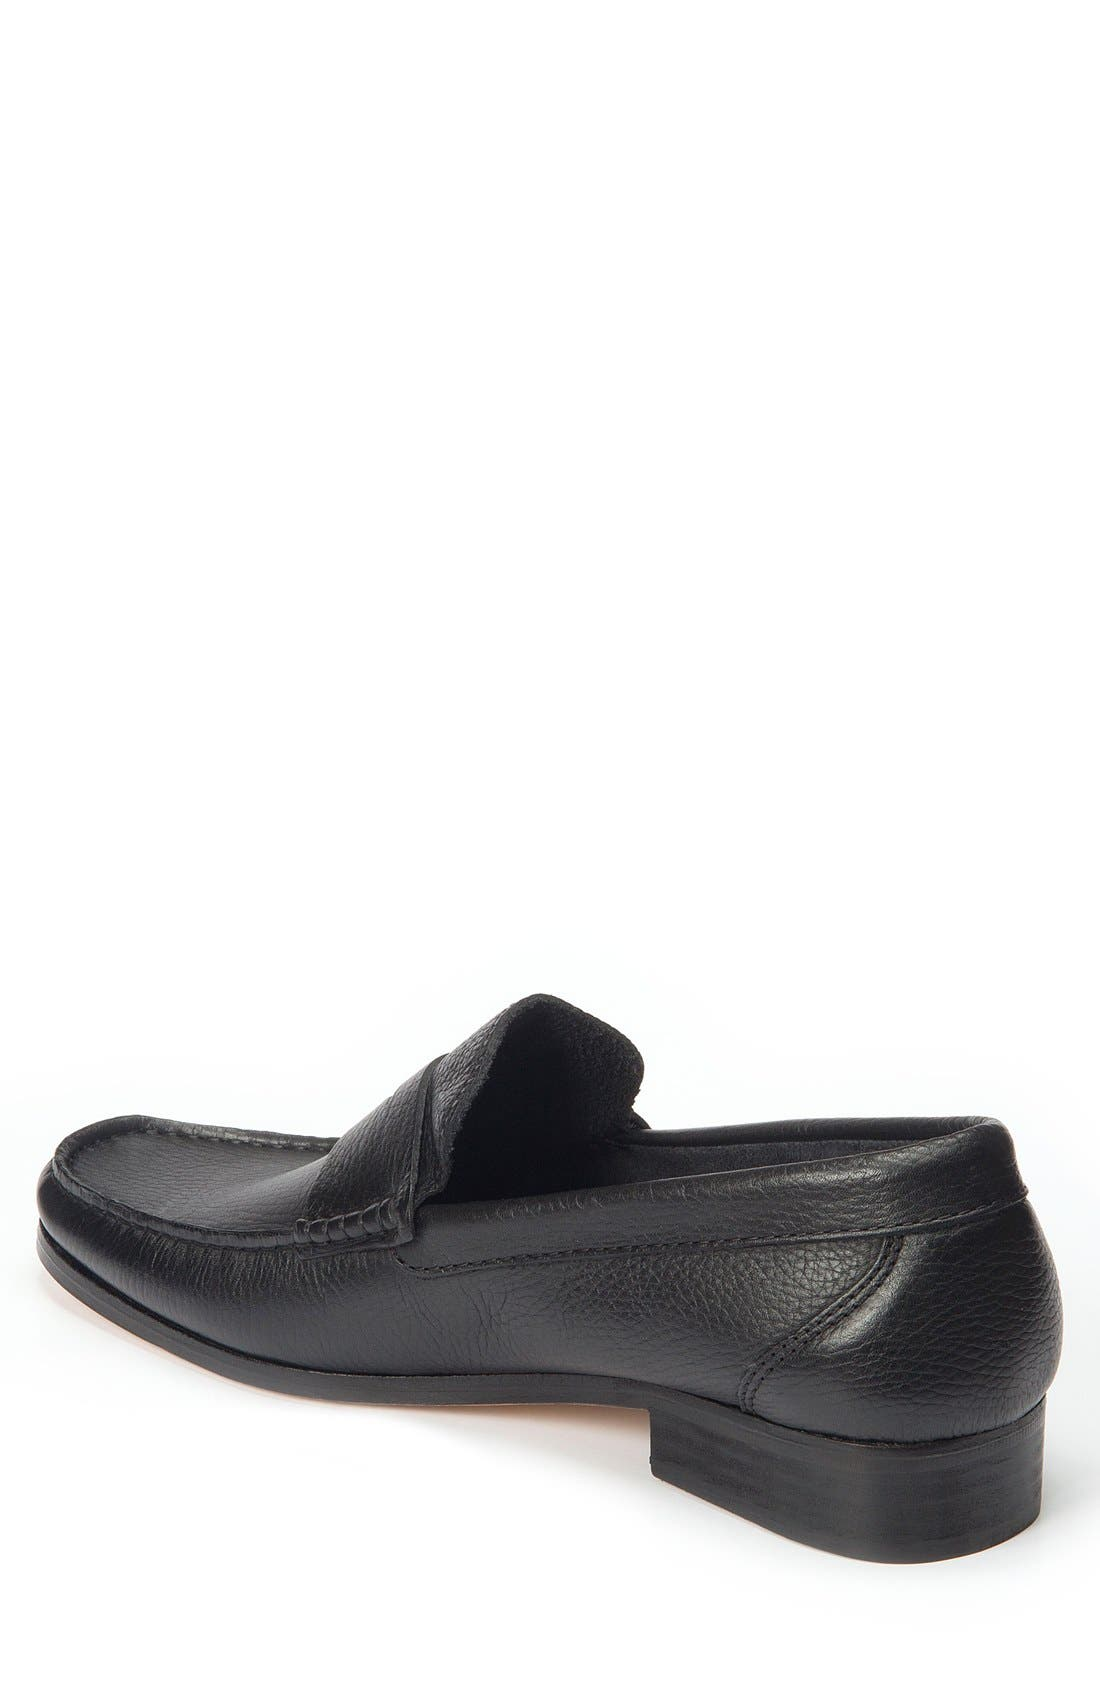 Segovia Penny Loafer,                             Alternate thumbnail 3, color,                             BLACK LEATHER